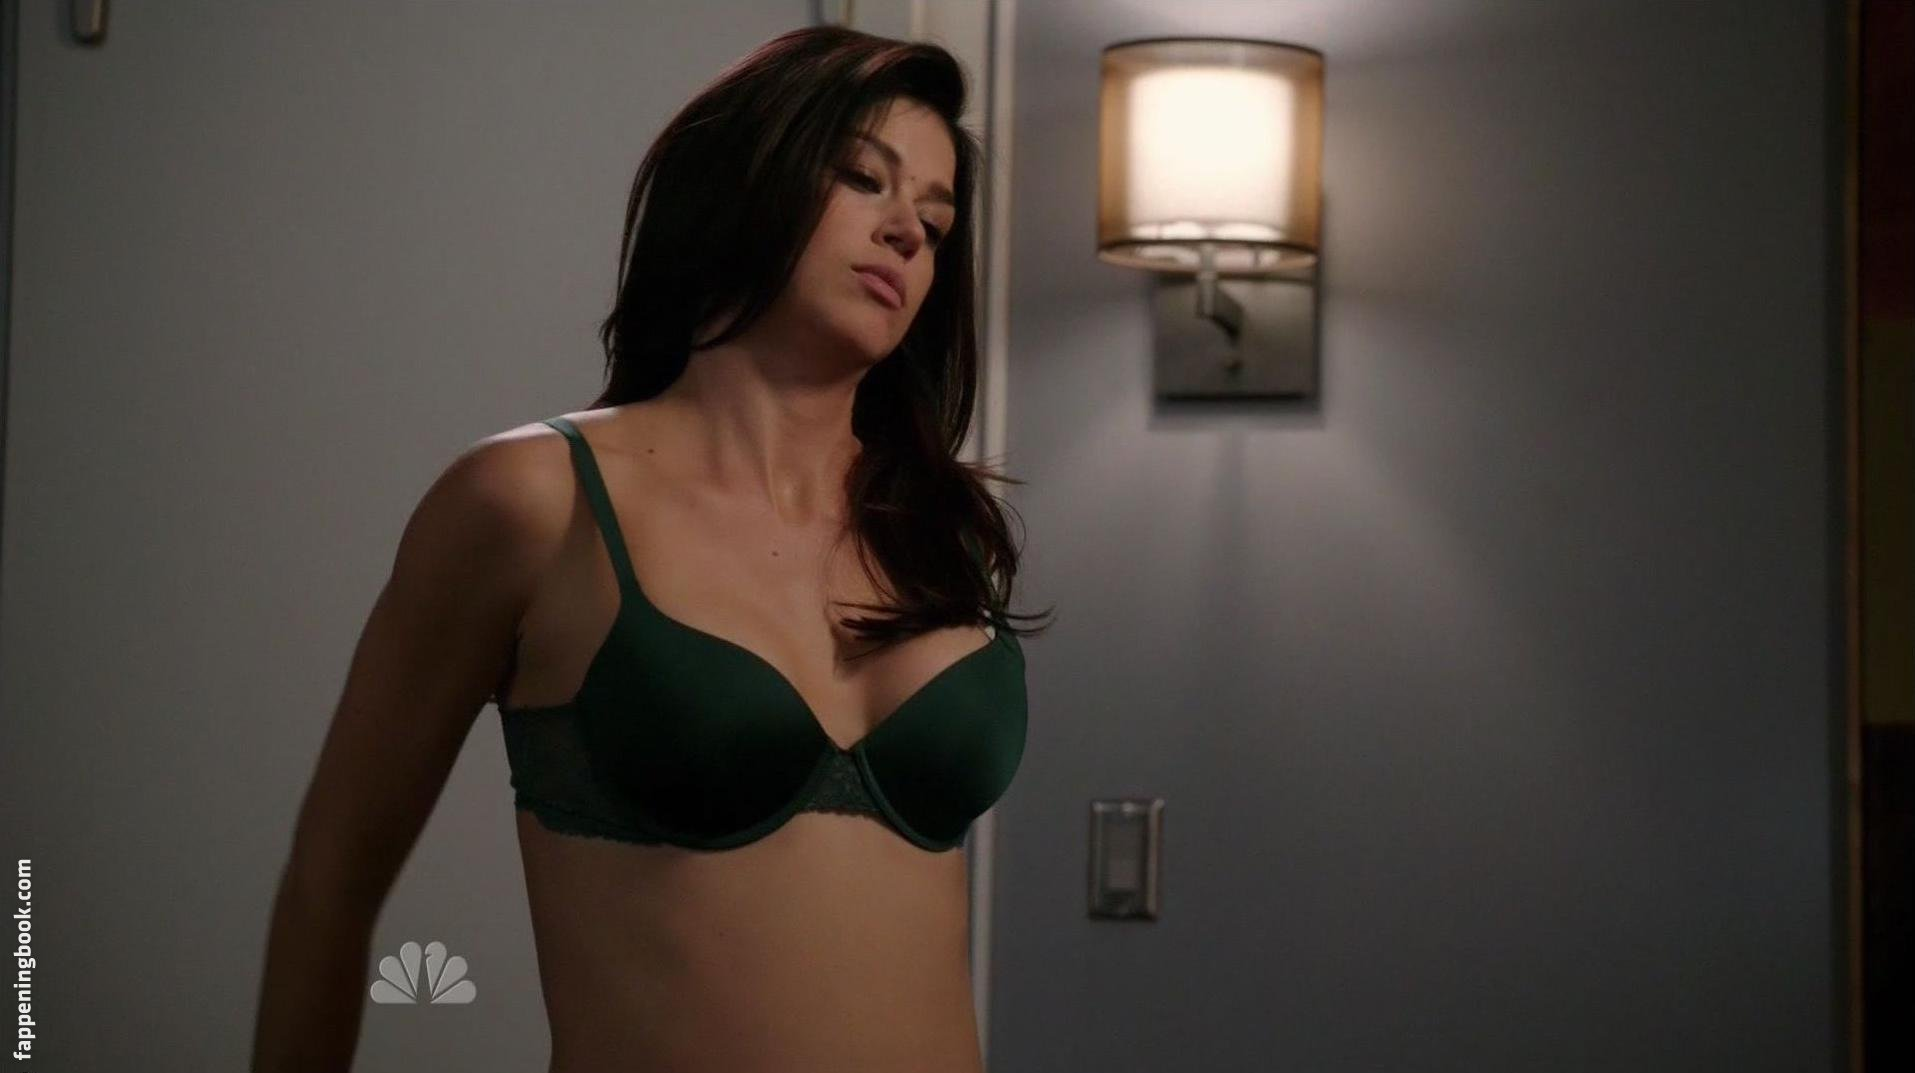 Adrianne Palicki topless photoset | The Fappening. 2014